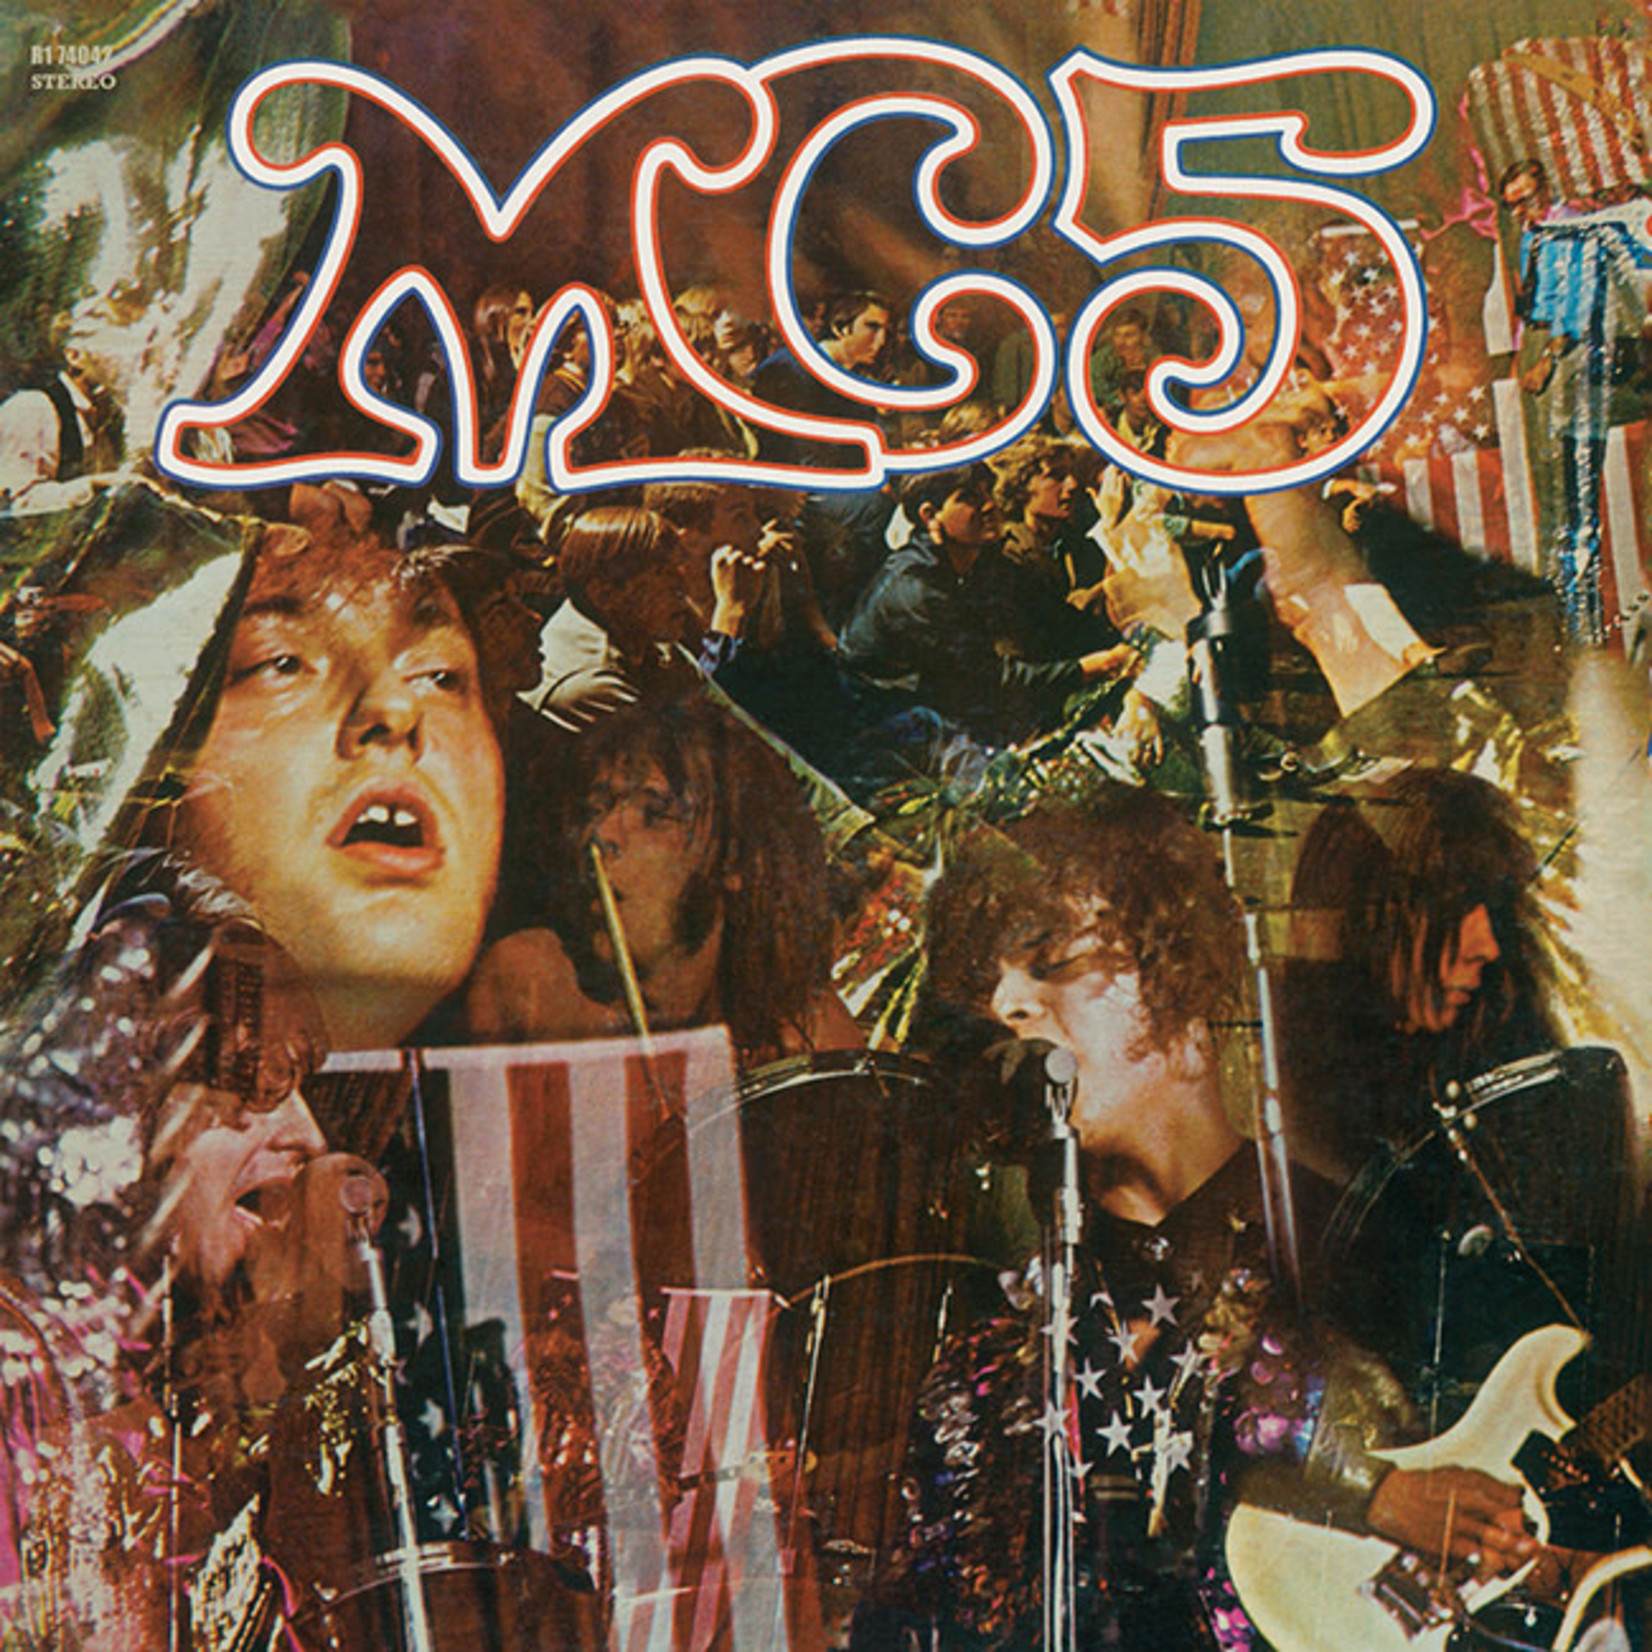 [New] MC5: Kick Out The Jams (Limited Ed., gatefold, red, white & blue vinyl)